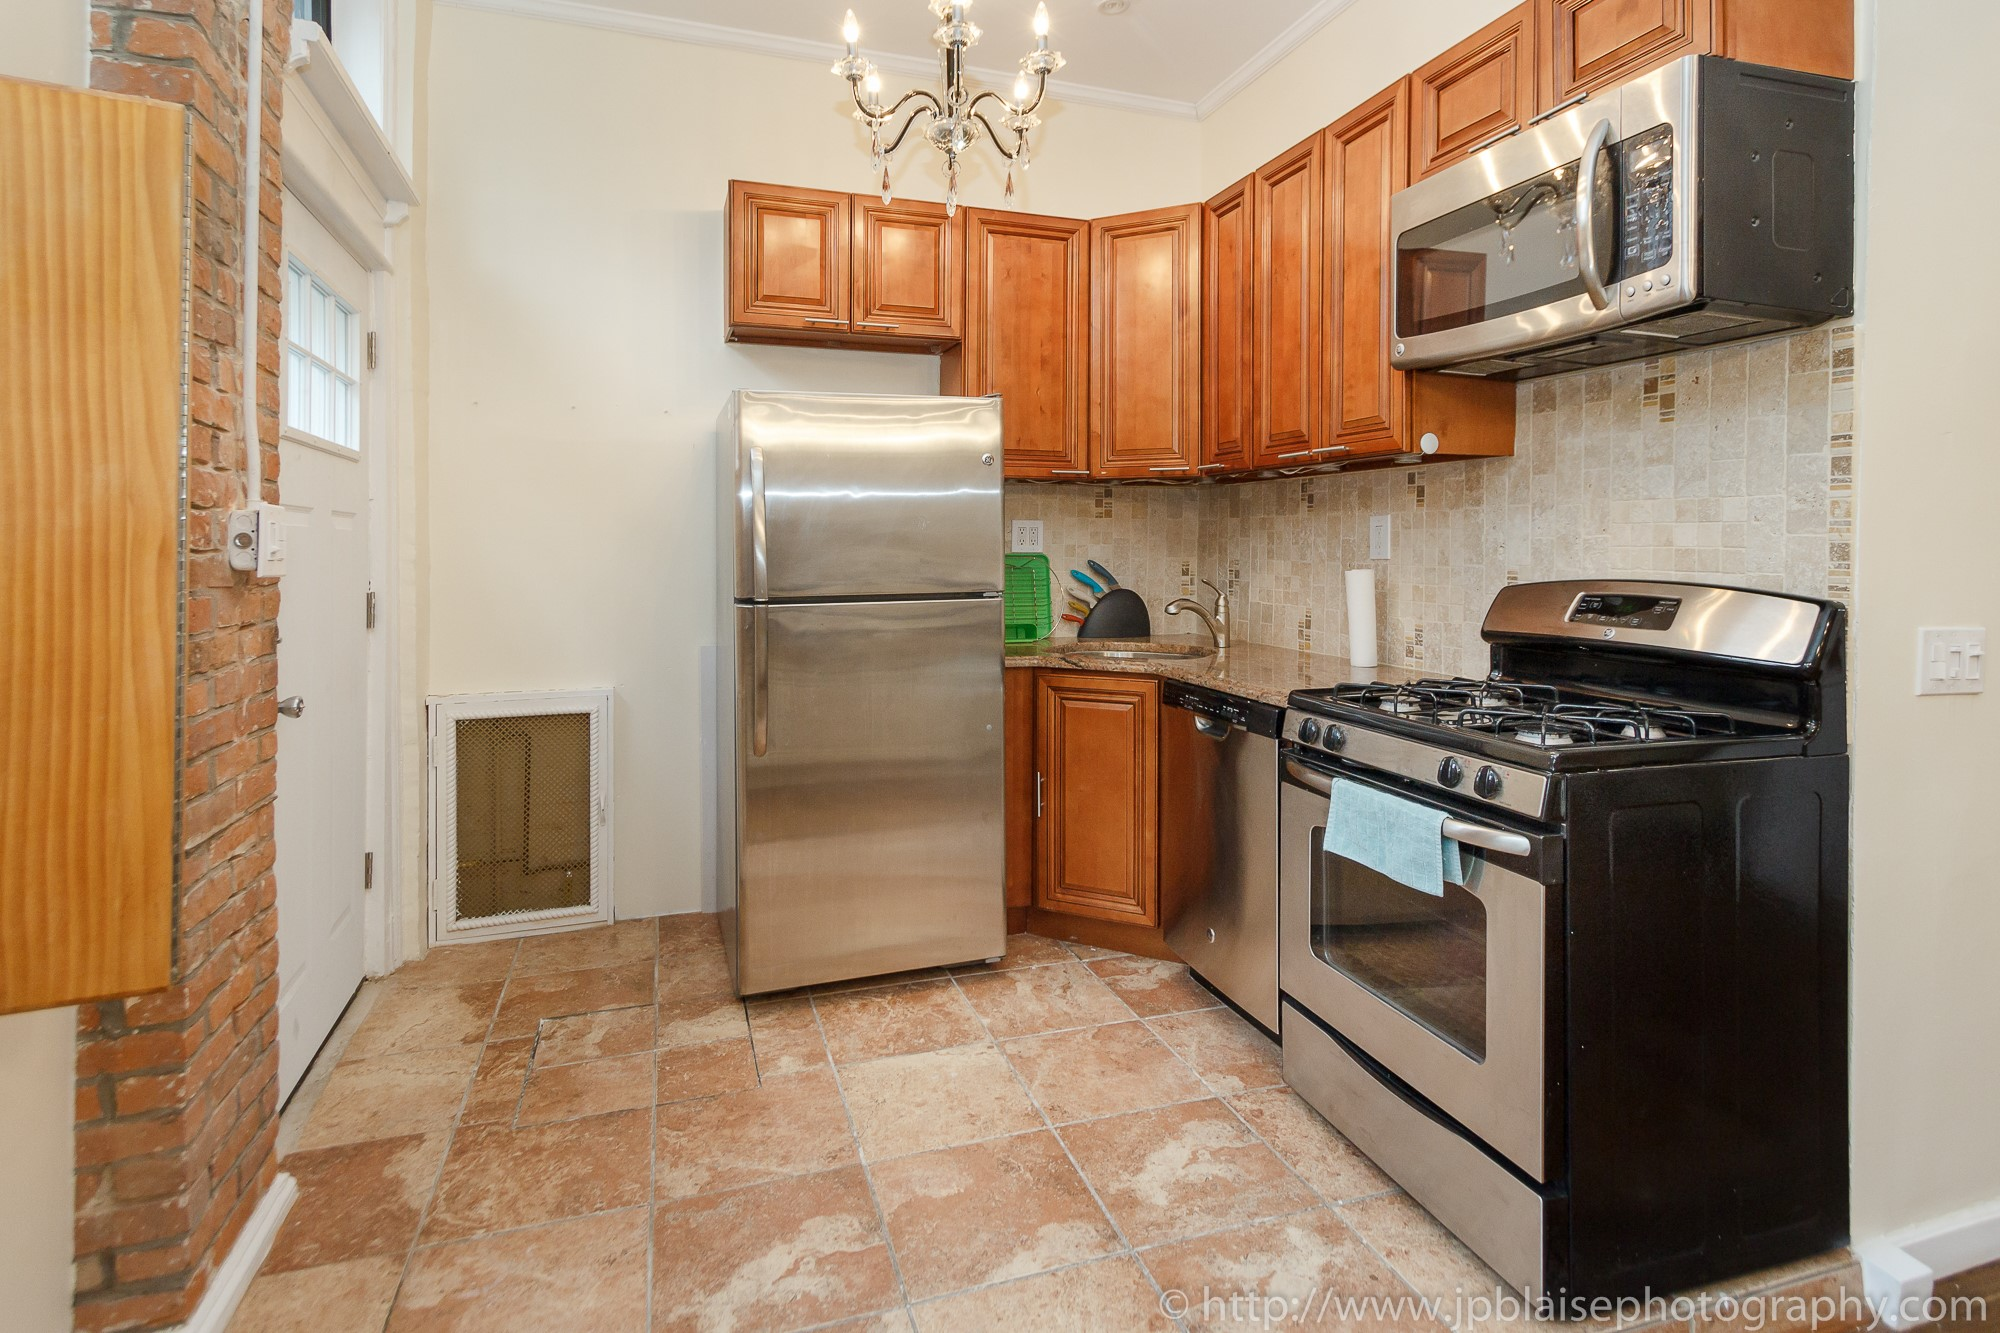 New york city Apartment photographer two bedroom in boerum hill brooklyn picture of kitchen